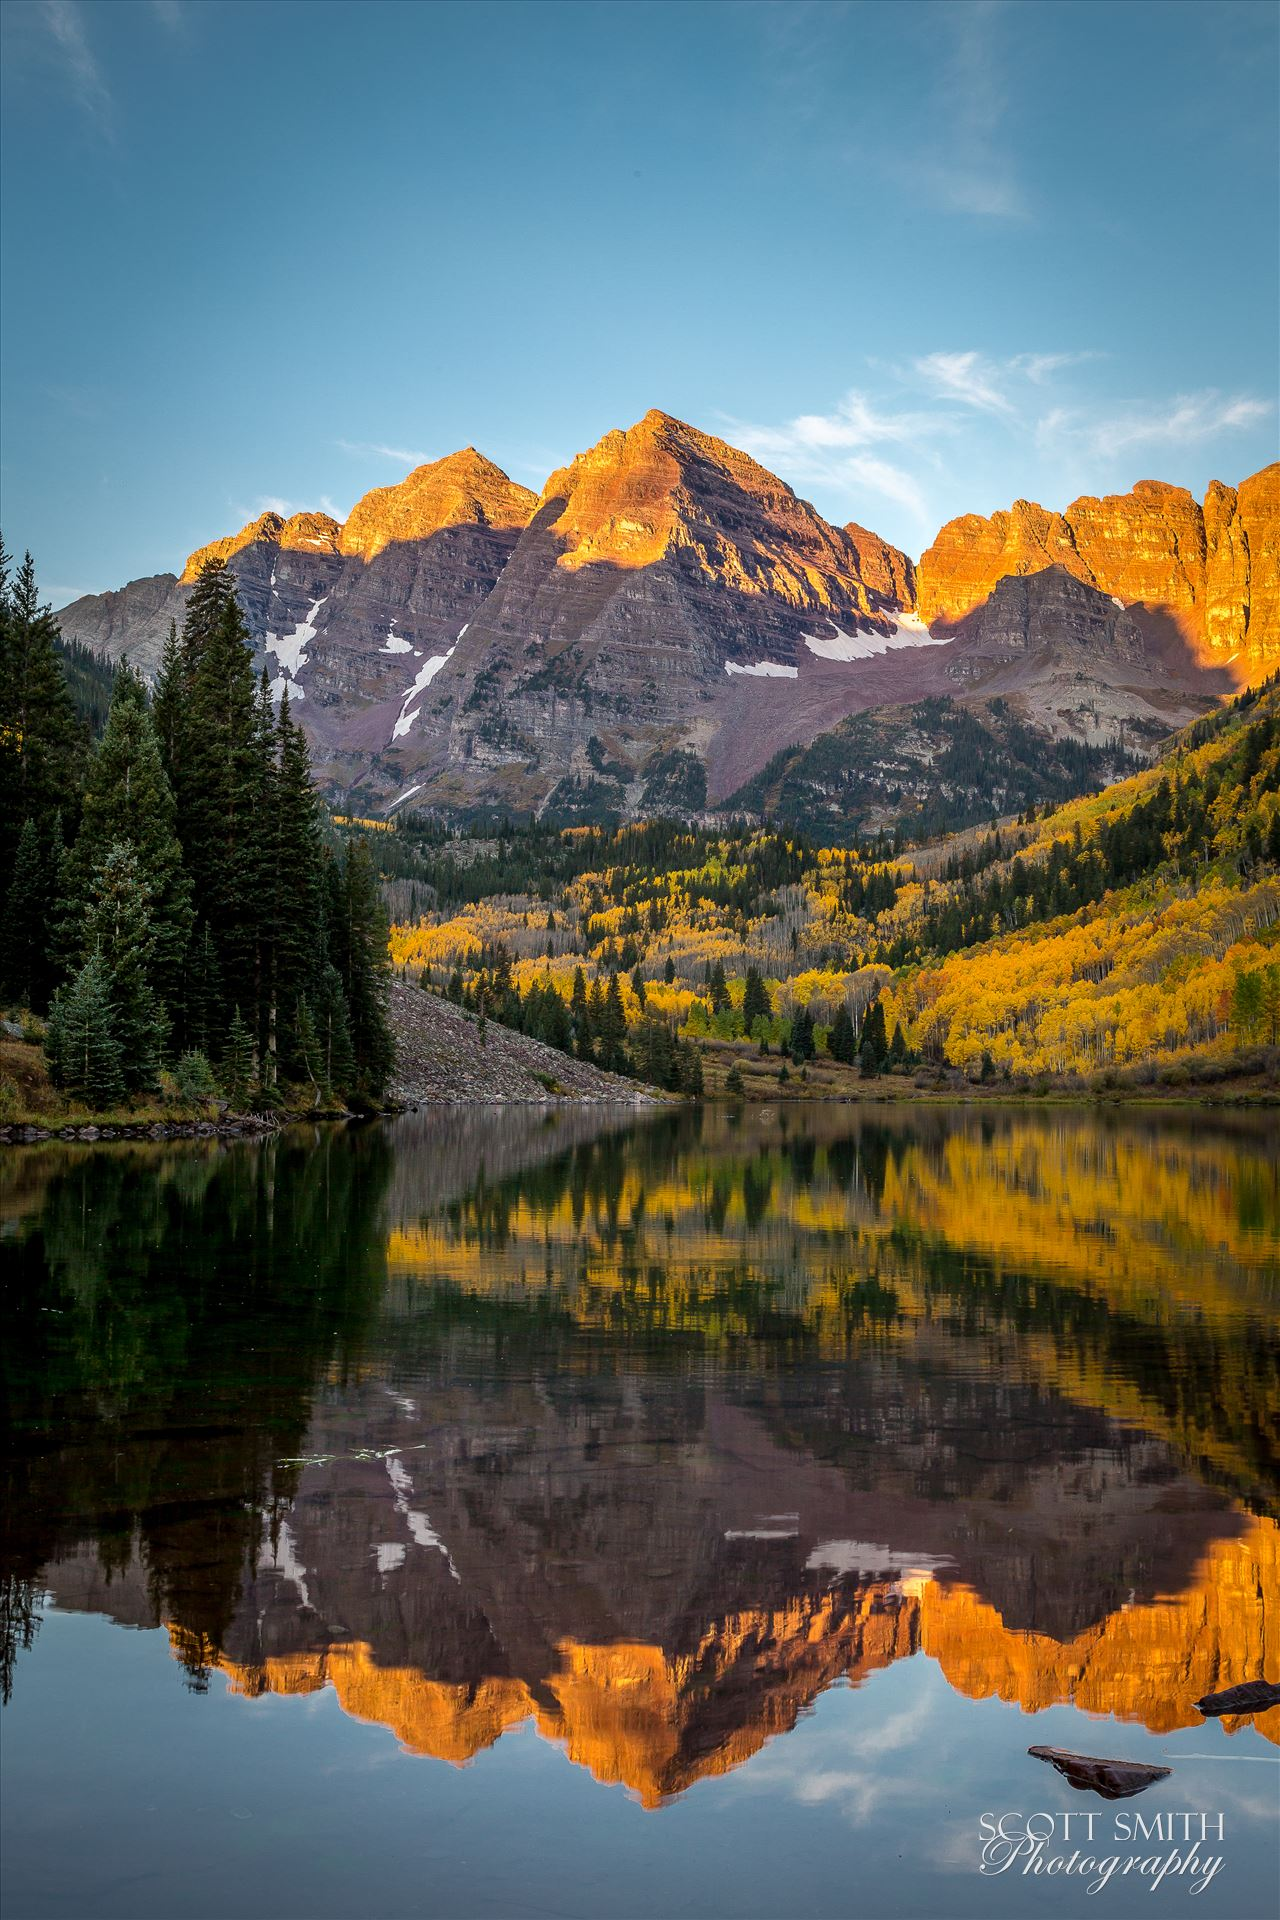 Maroon Bells - The Maroon Bells reflected in Maroon Lake. Taken September, 2014. by D Scott Smith